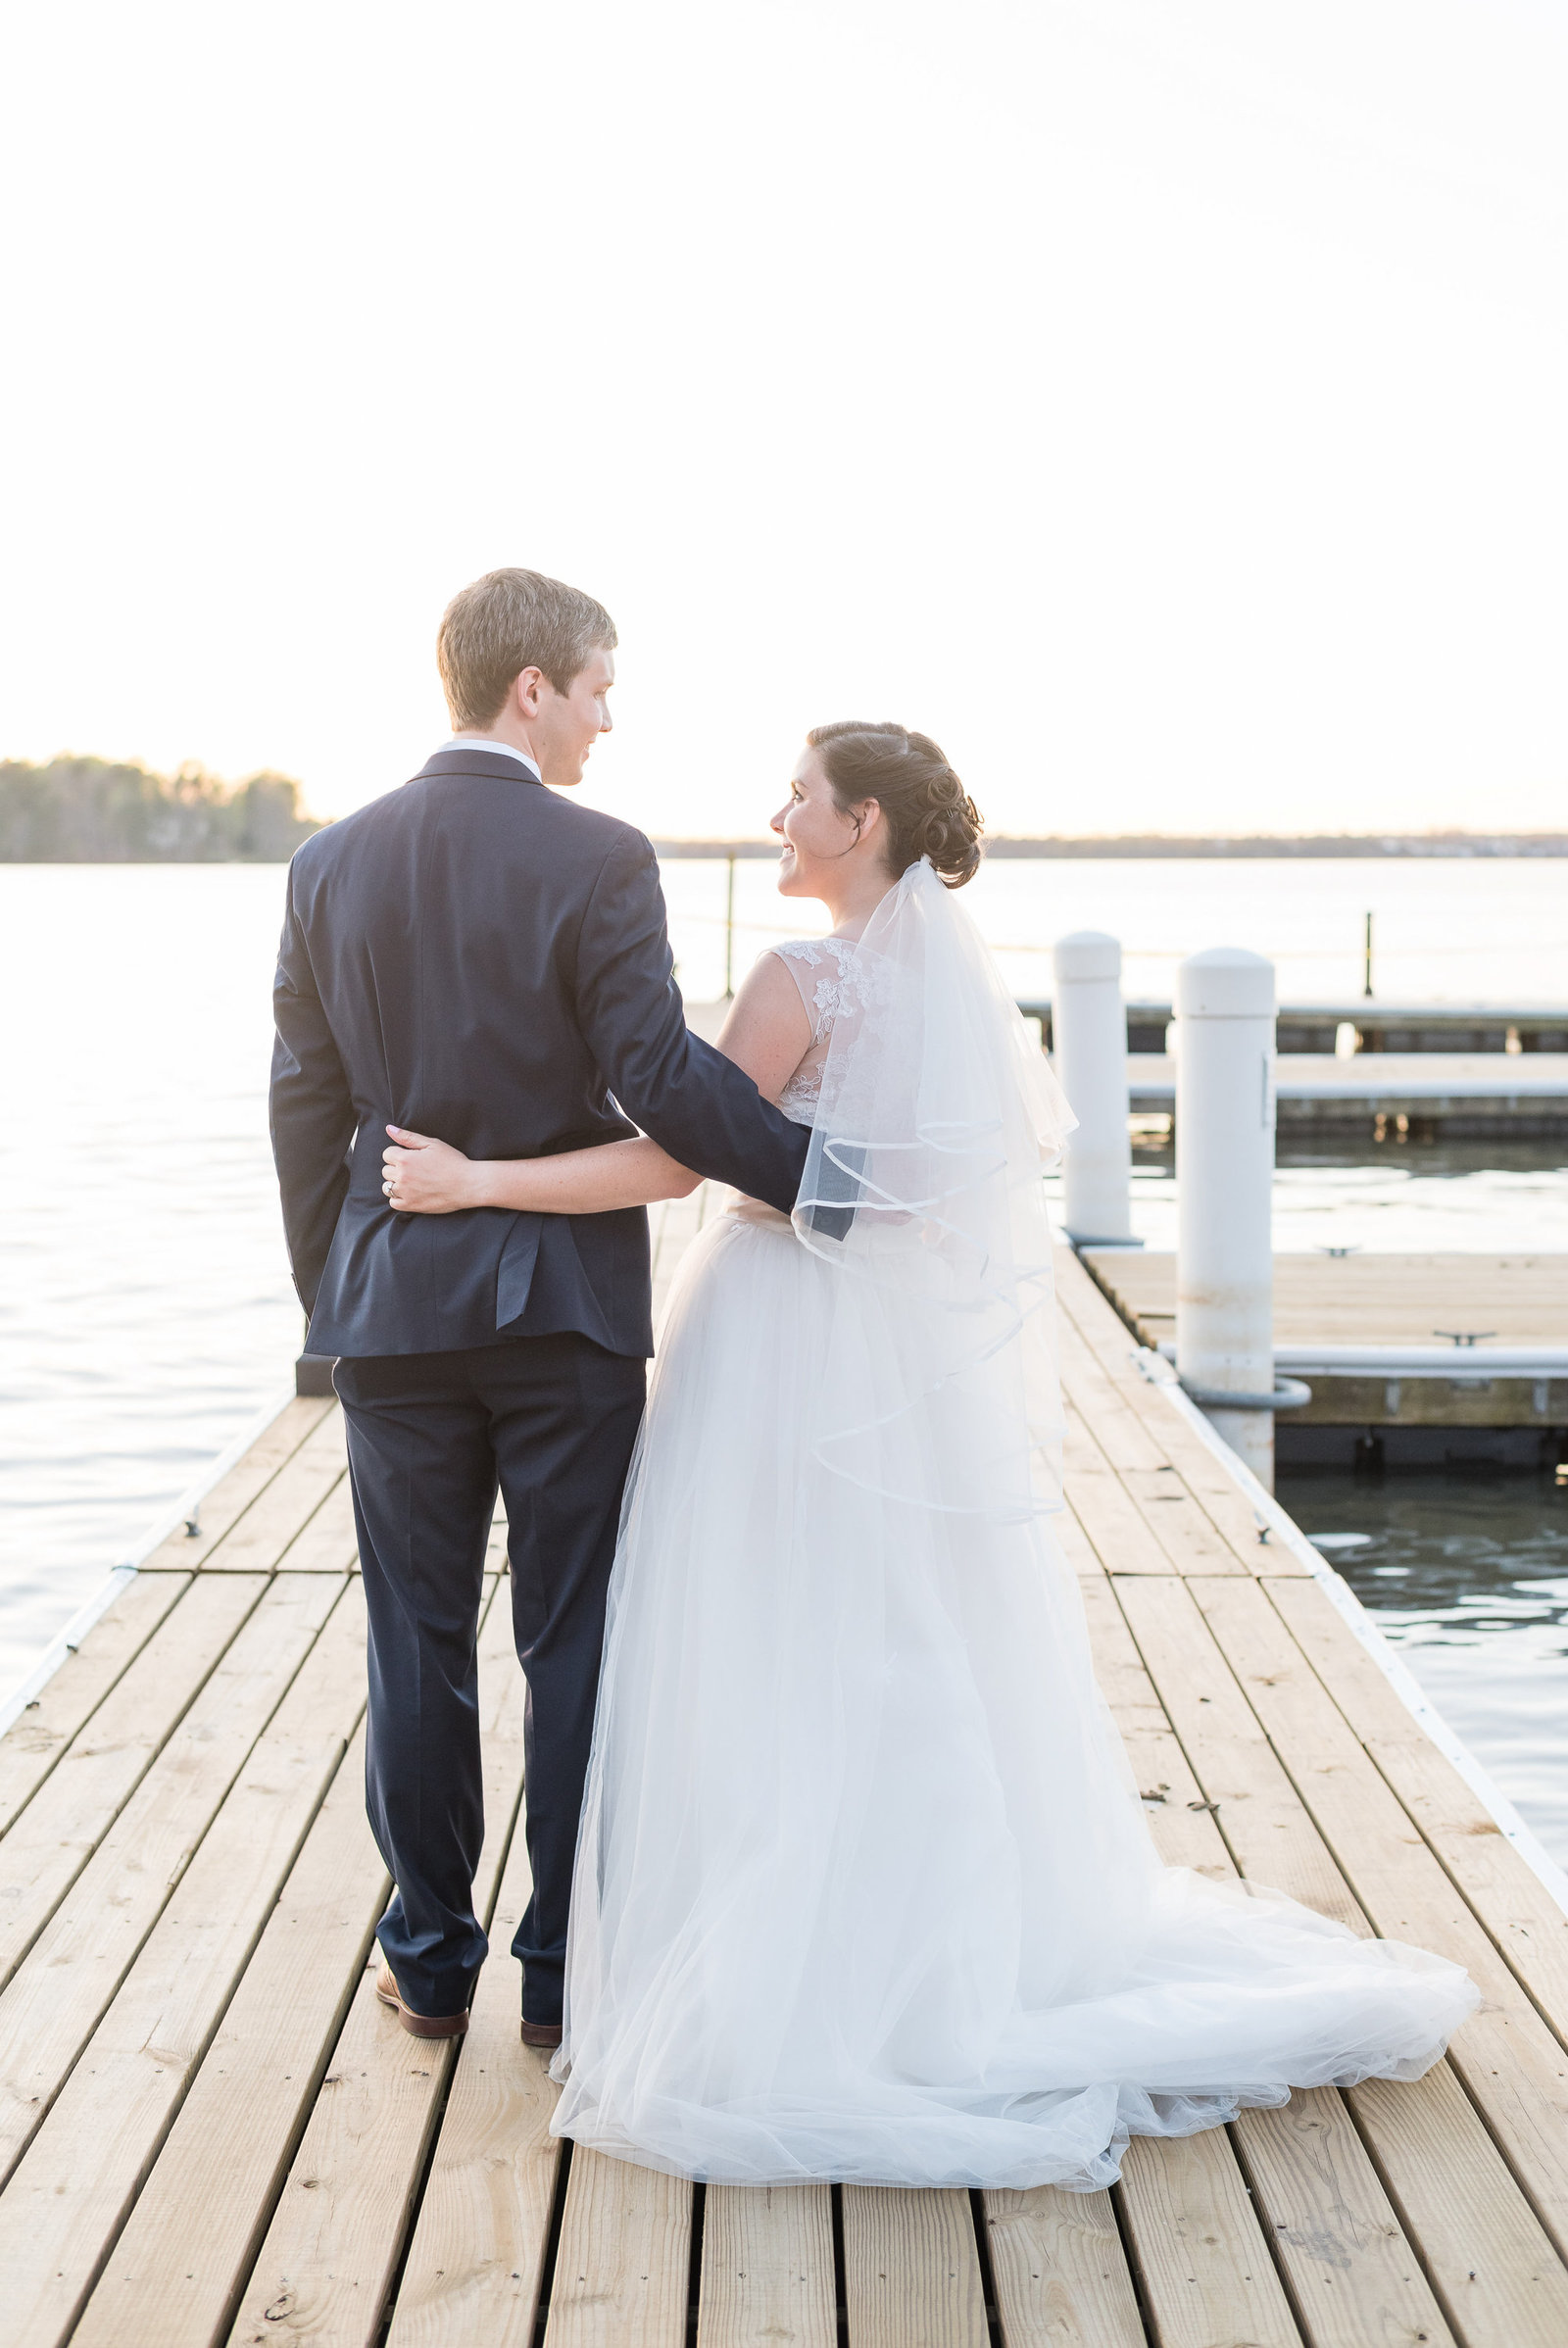 Sarah-and-Andrew-Boathouse-at-Sunday-Park-Wedding-Melissa-Desjardins-Photography-7